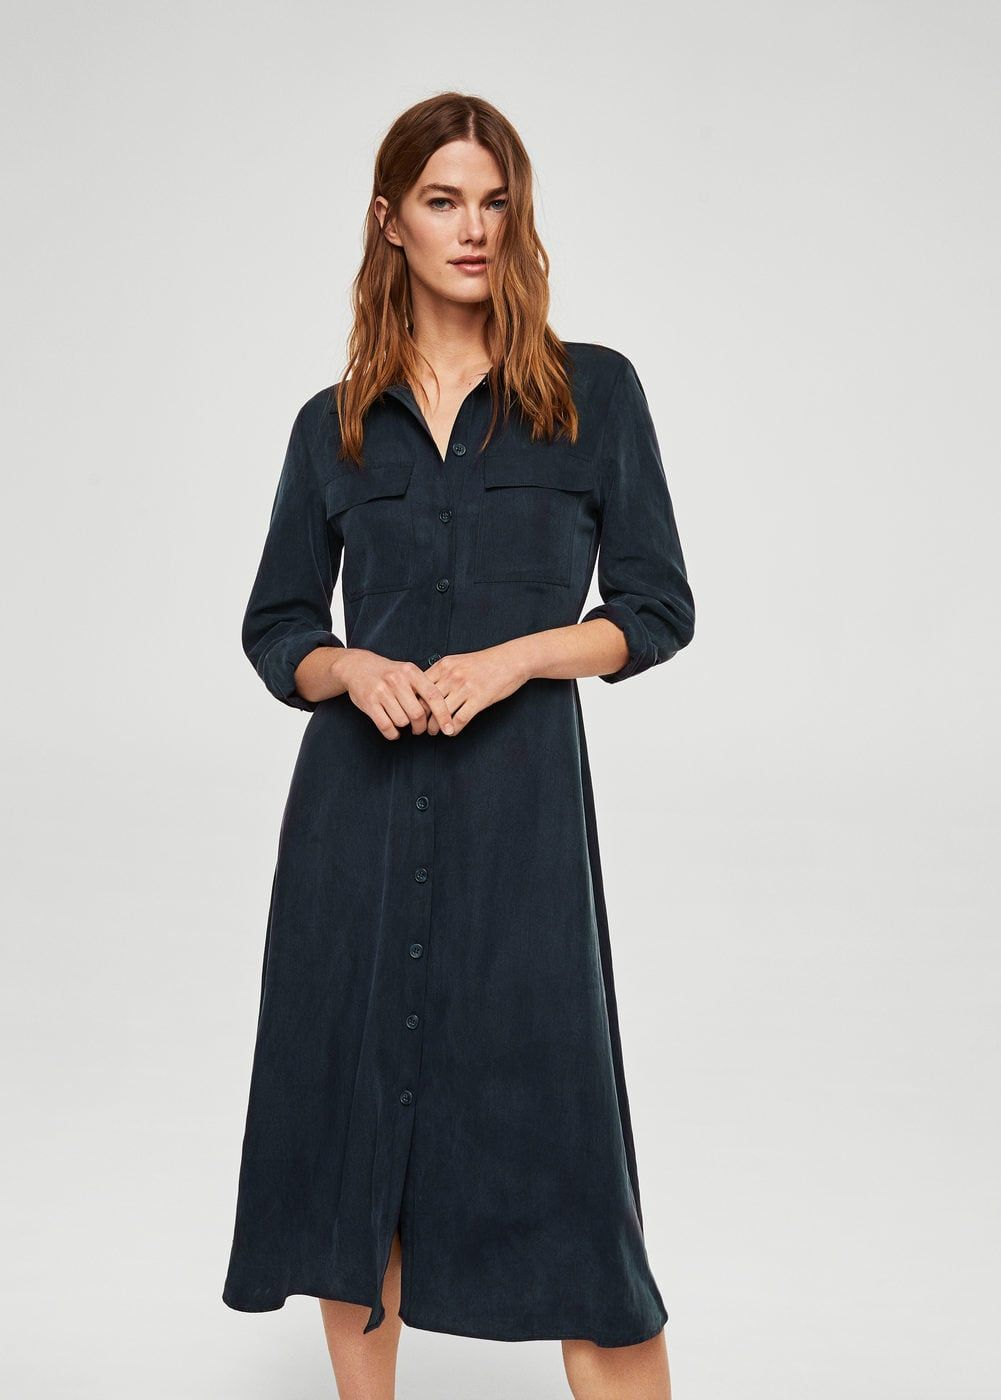 Mango tunisie robe soiree